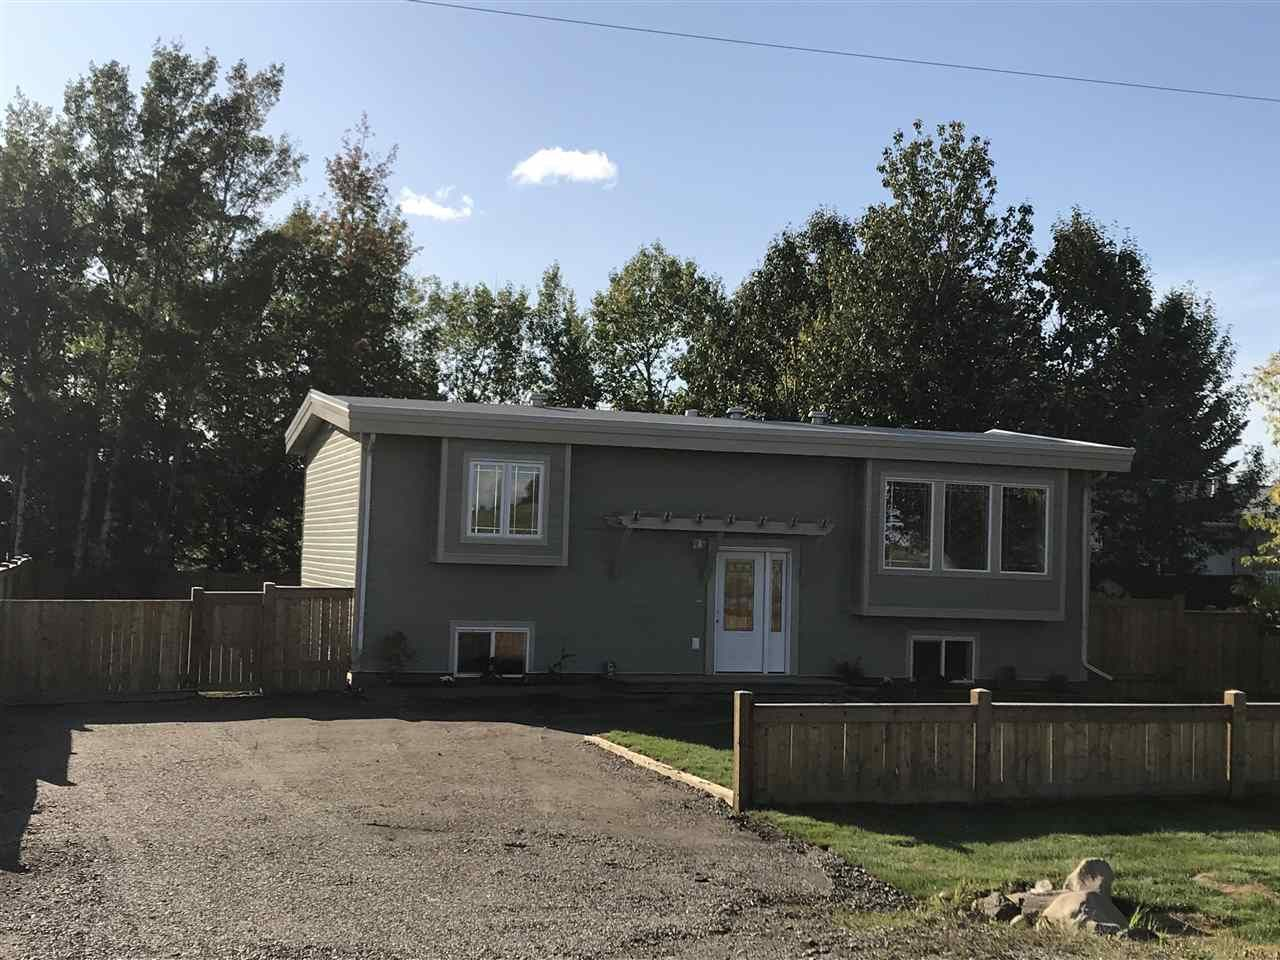 """Main Photo: 10050 257 Road in Fort St. John: Fort St. John - Rural W 100th House for sale in """"AIRPORT SUBDIVISION"""" (Fort St. John (Zone 60))  : MLS®# R2405365"""